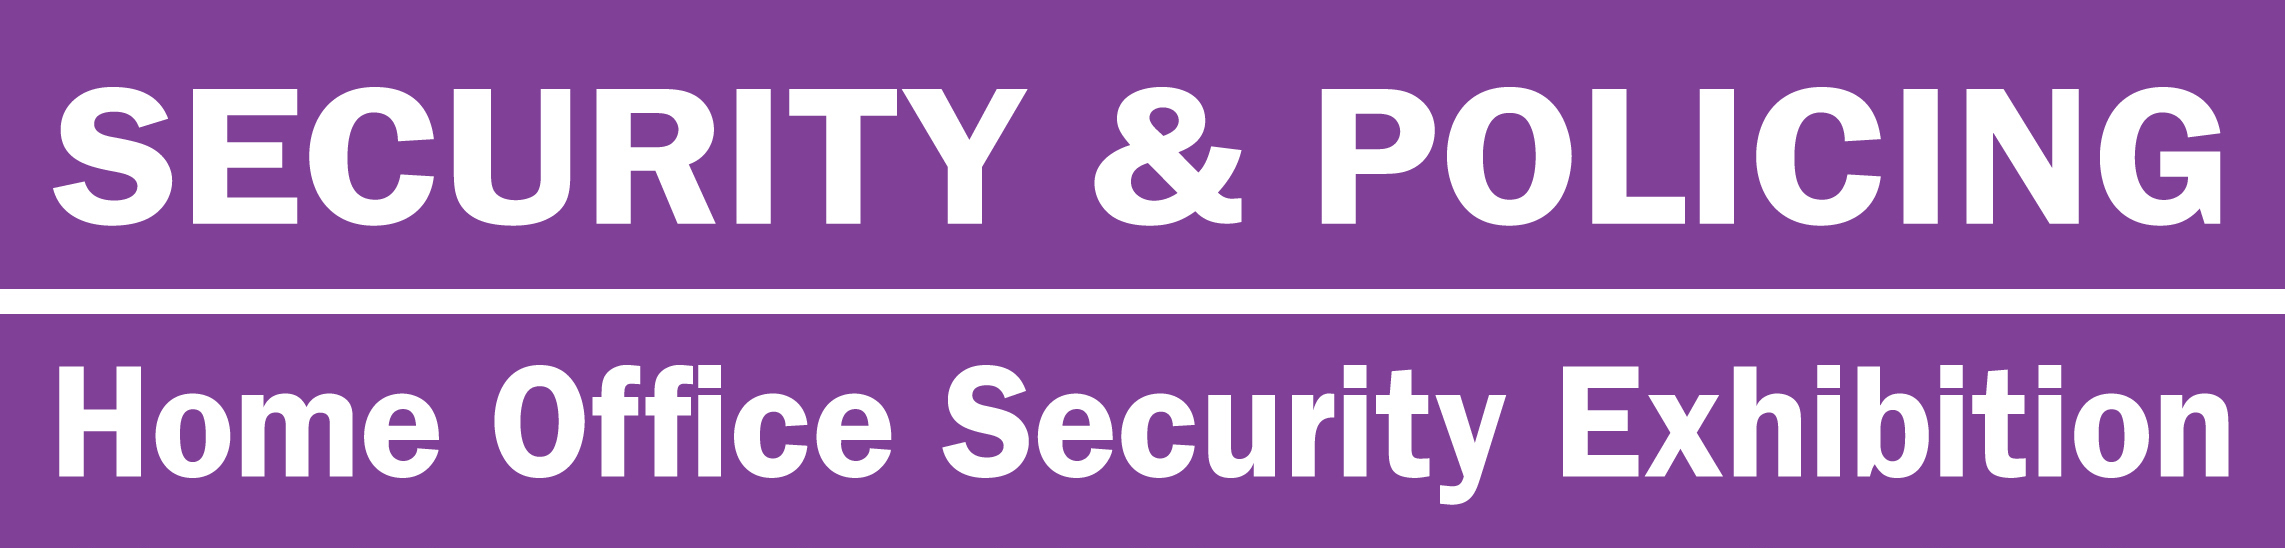 IPS expositor en Security and Policing 2018